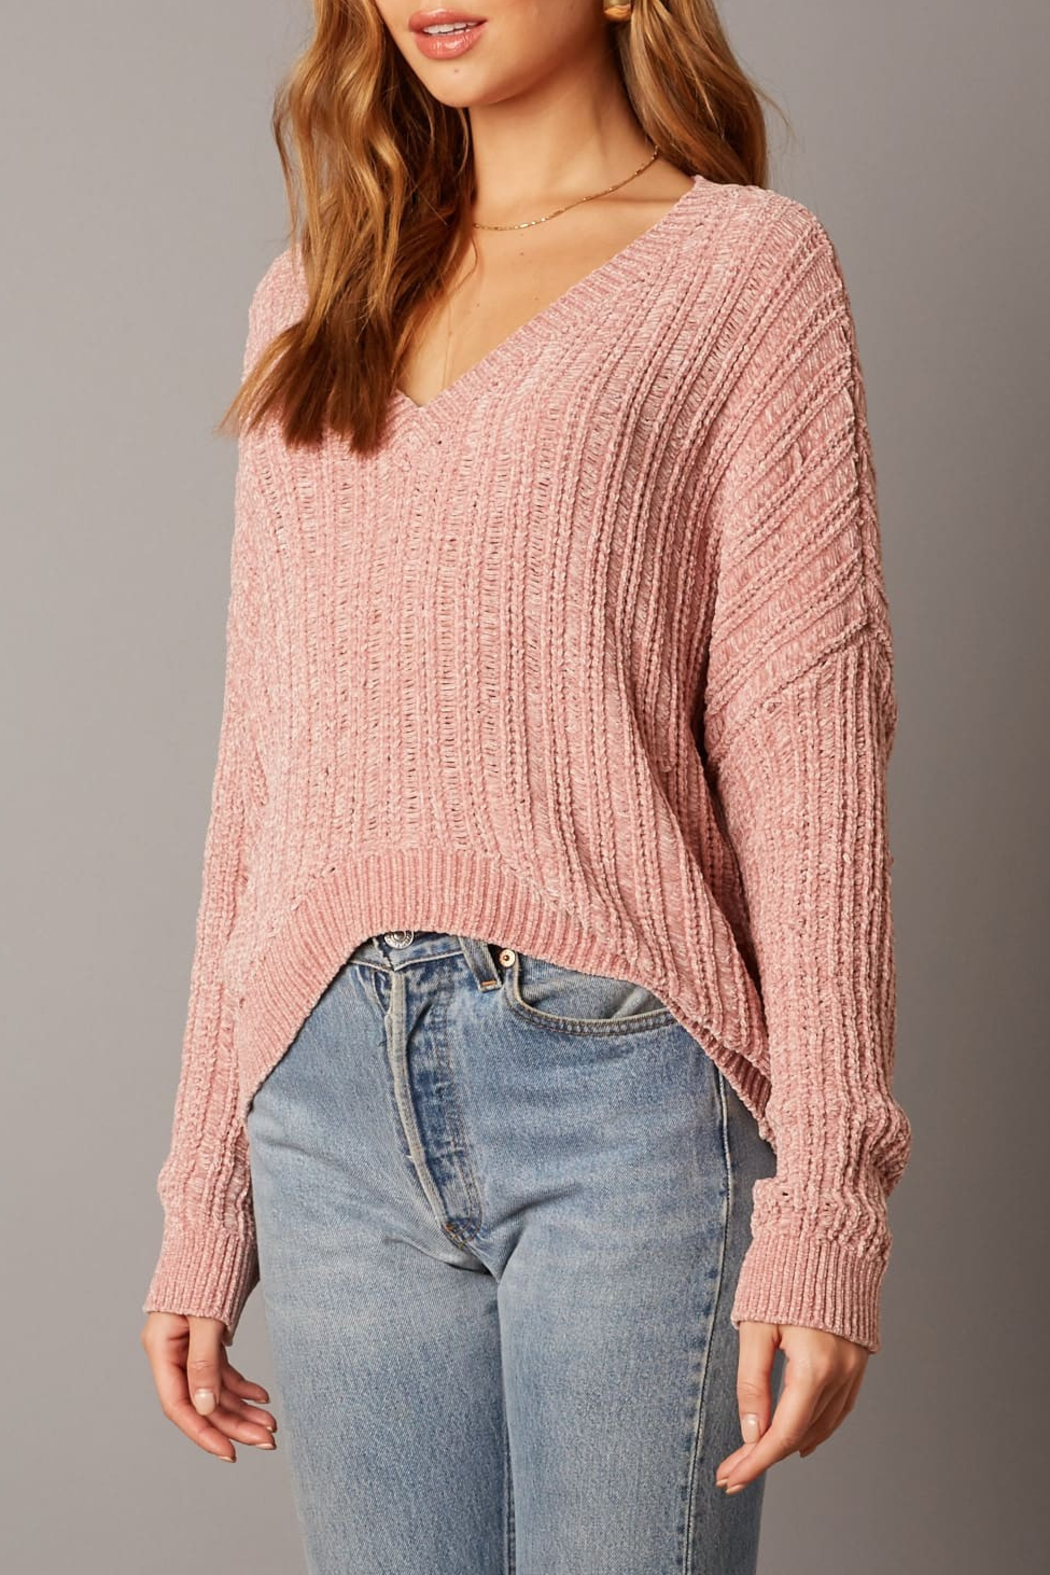 Cotton Candy LA Ribbed Sweater - Side Cropped Image